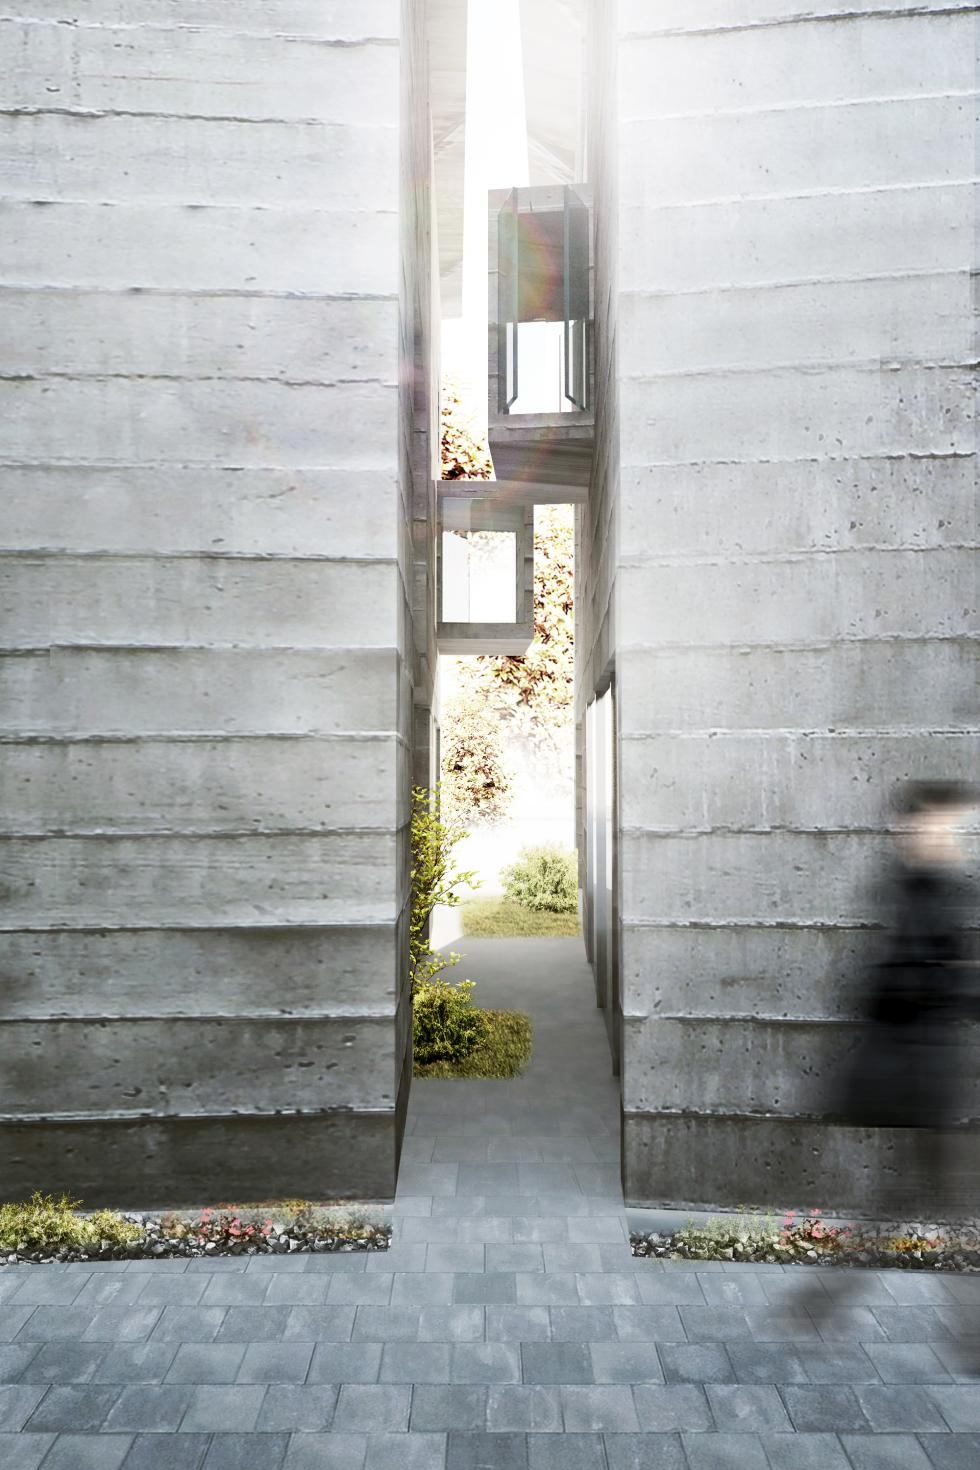 Work by Erin Yook